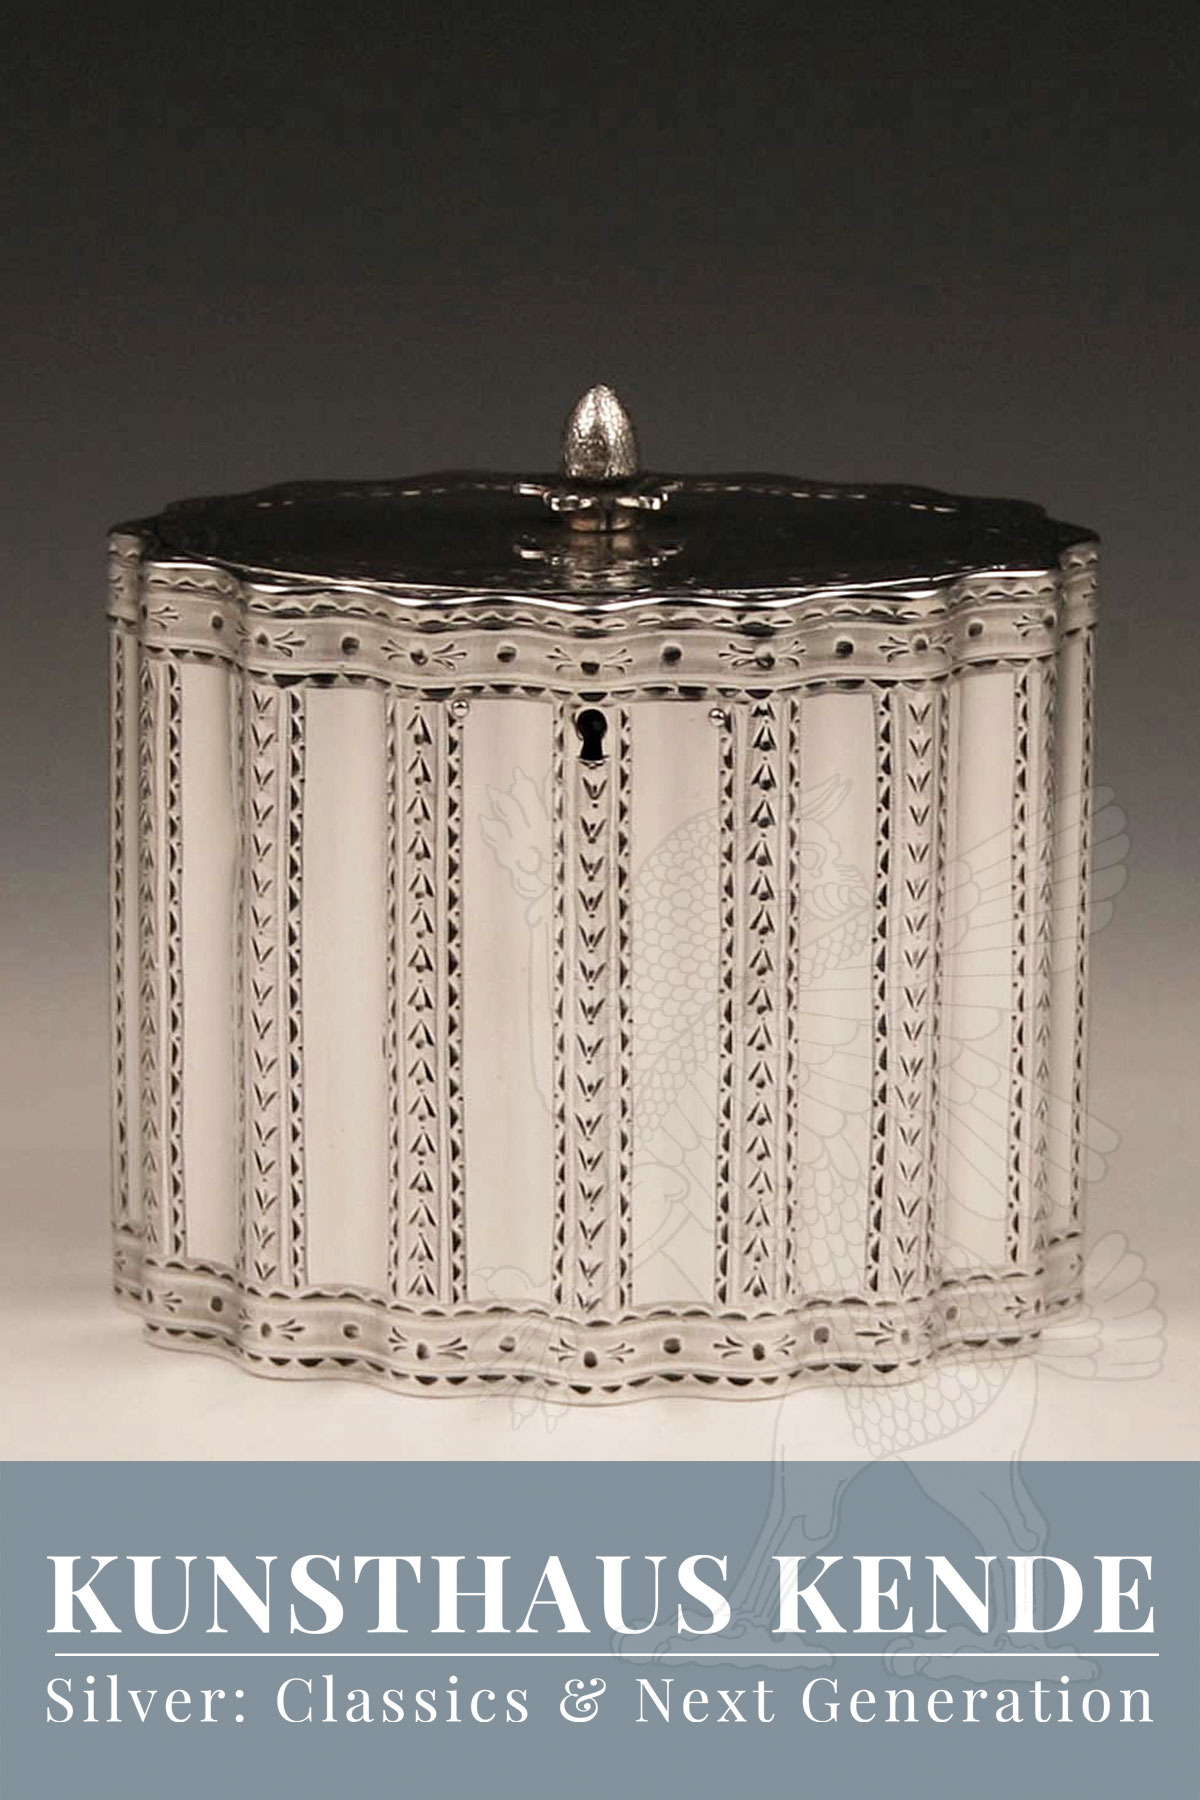 teedose sterling silber London 1781 englische dose caddy antik robert hennell